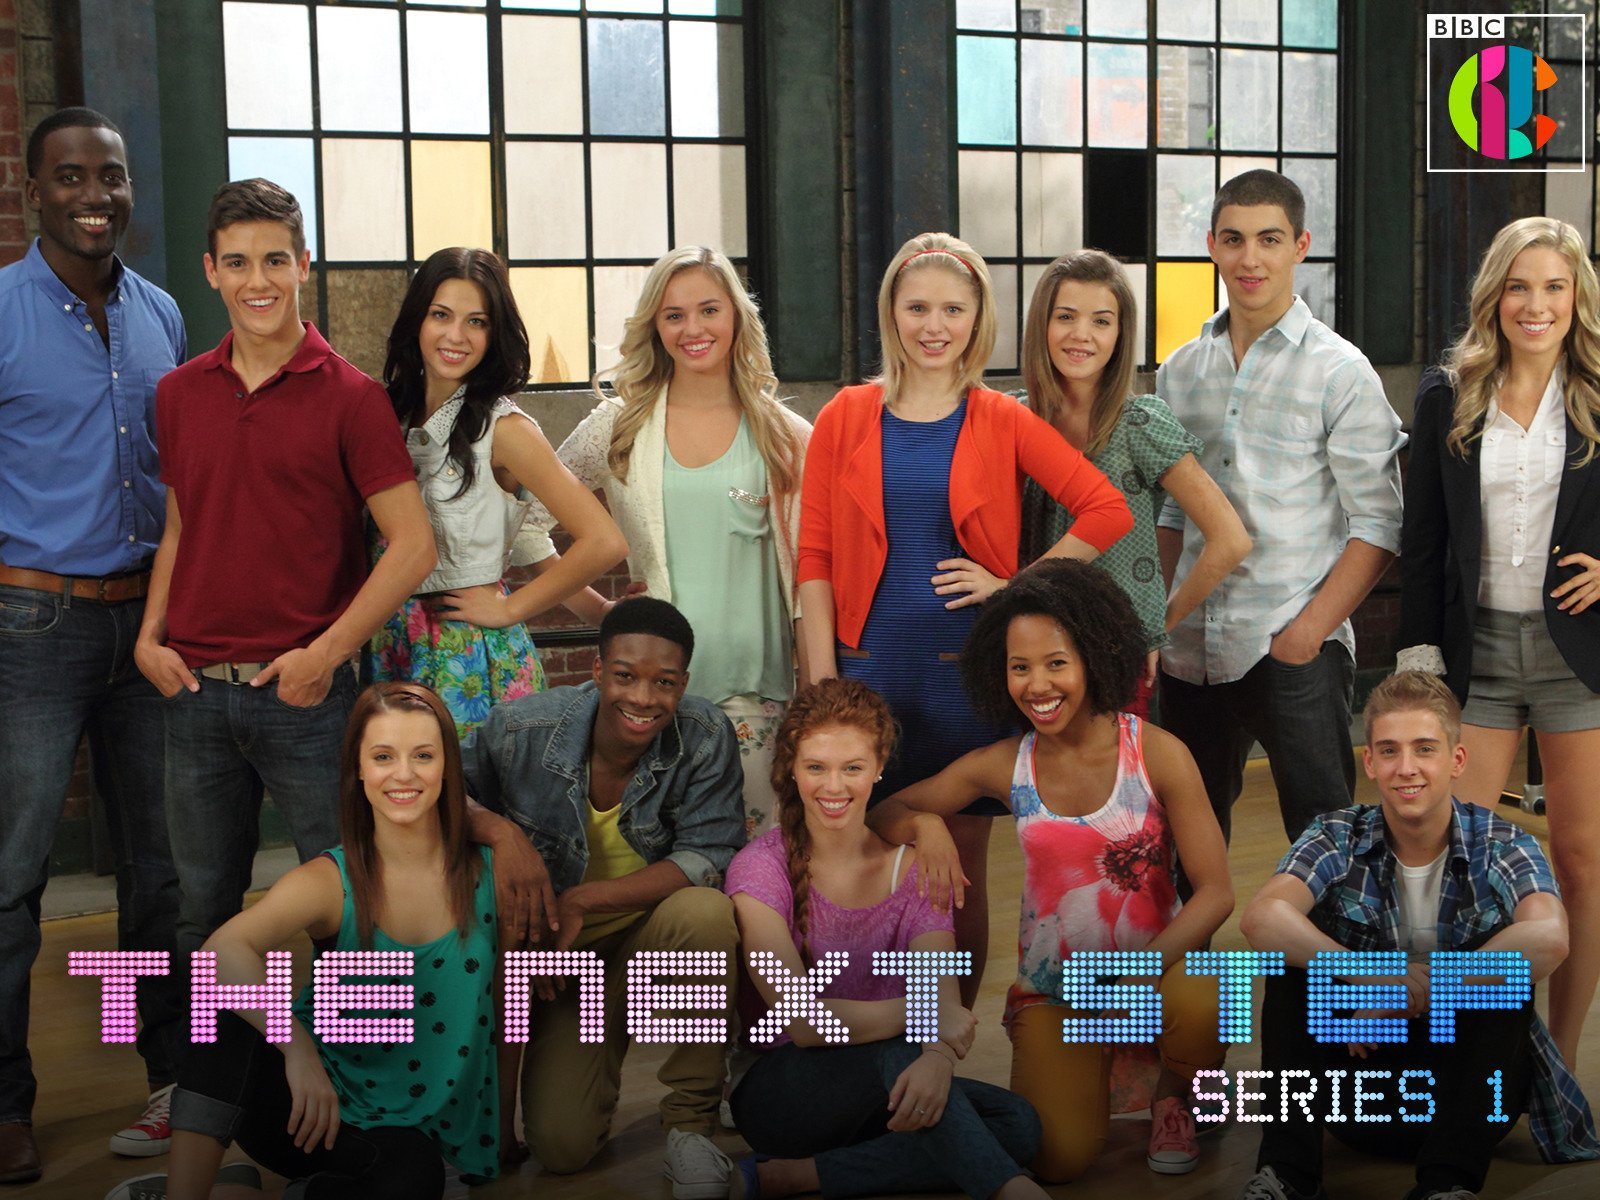 The Next Step, Season 1 - Season 1